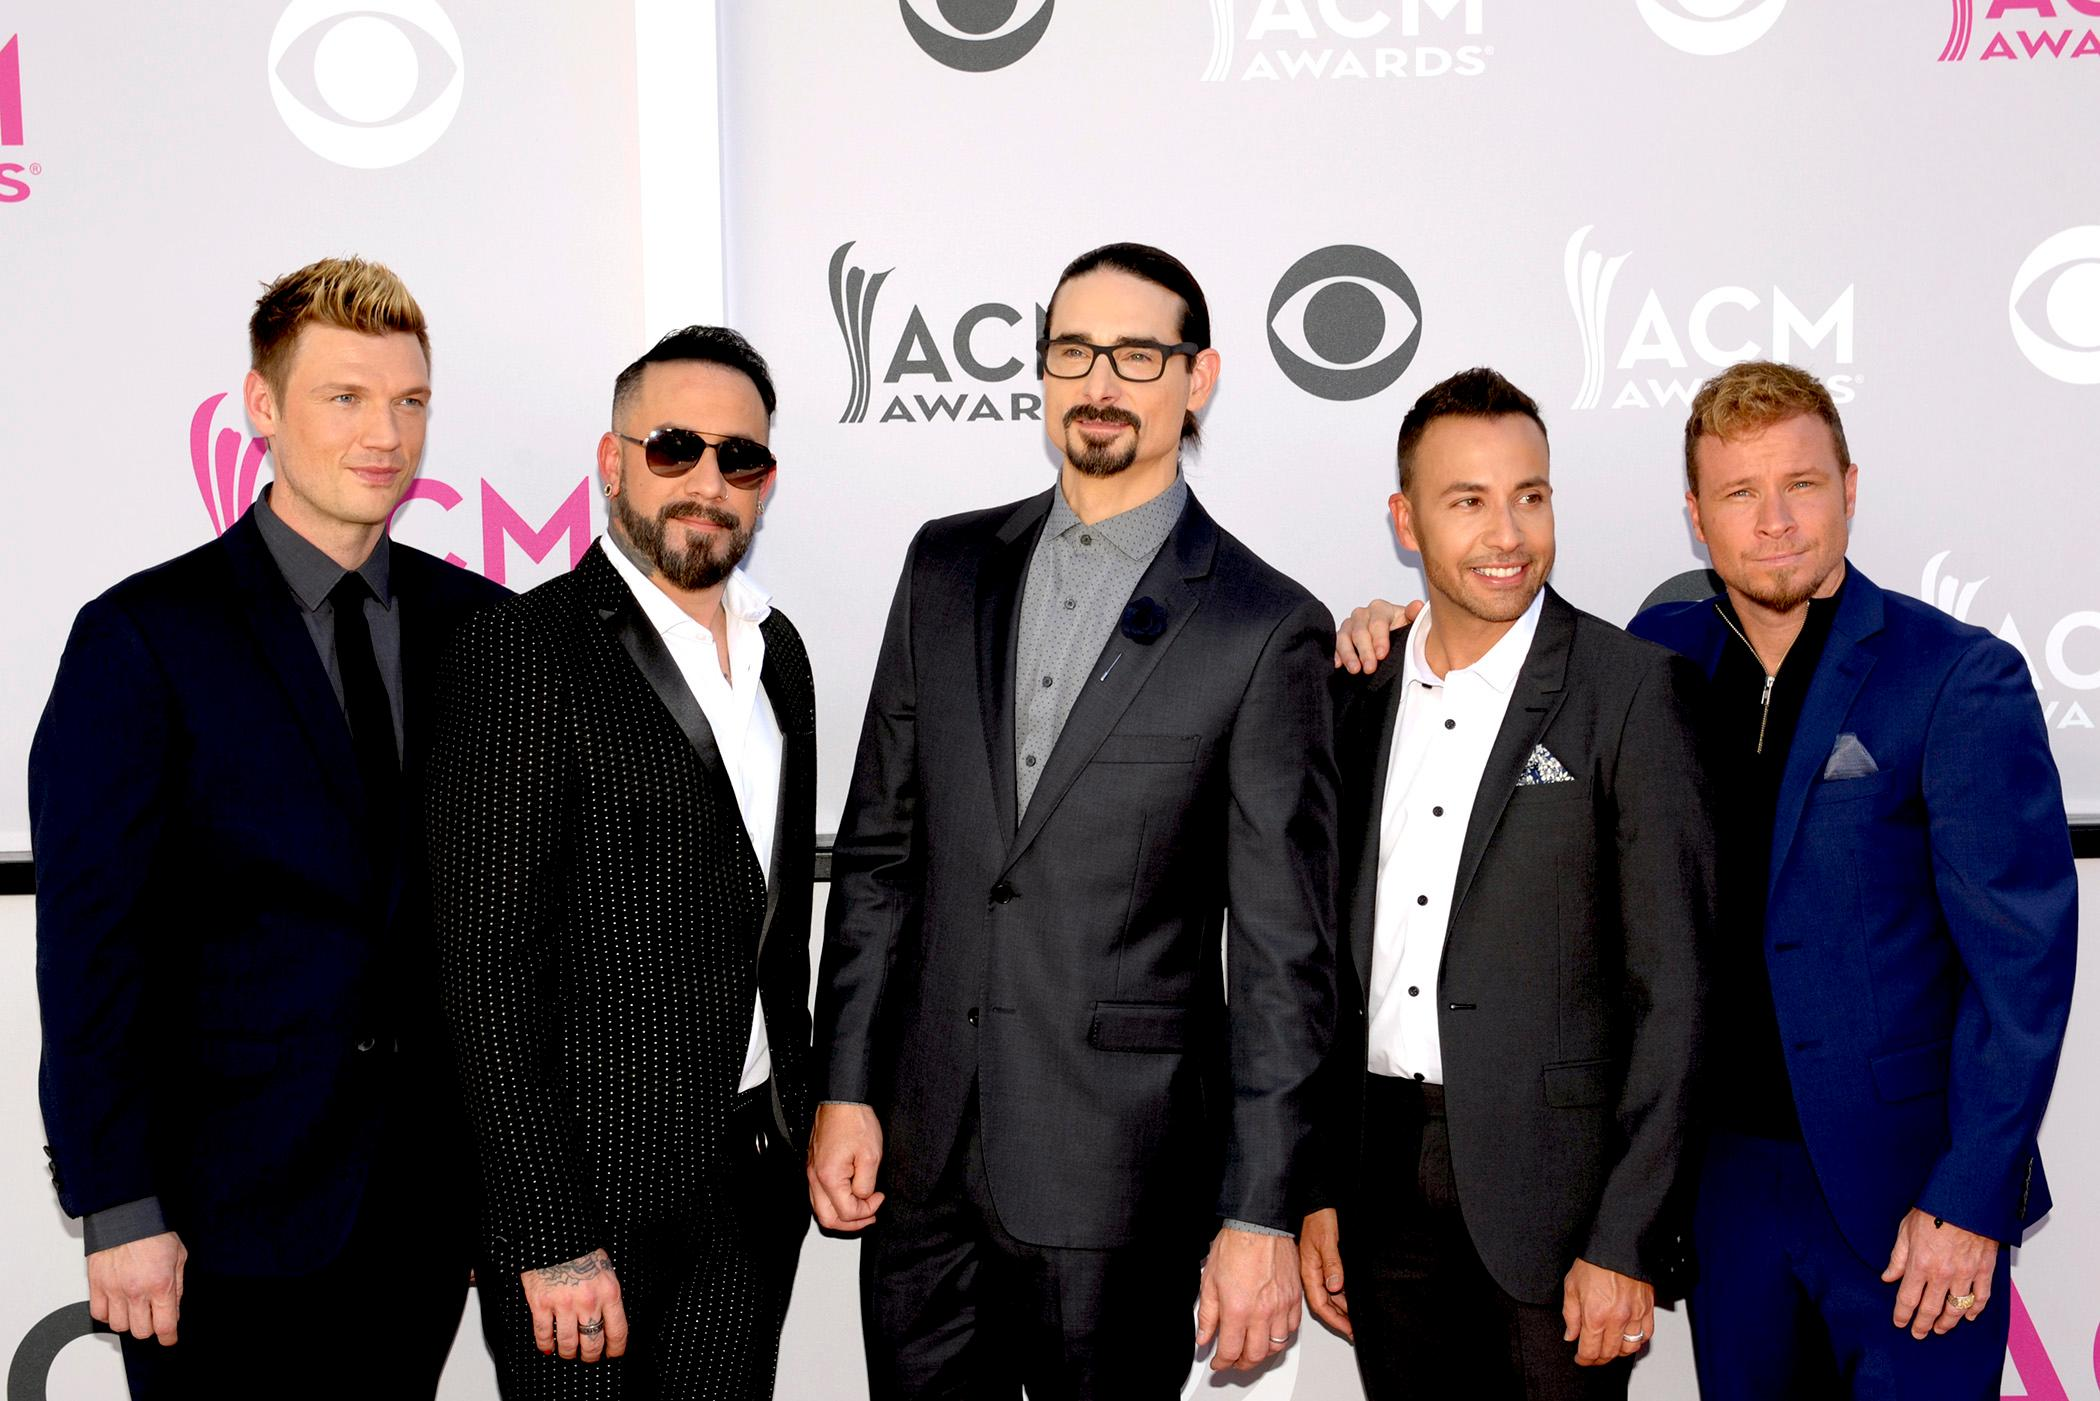 (left to right) Nick Carter, AJ McLean, Kevin Richardson, Howie Dorough and Brian Littrell also known as the Backstreet Boys walk the Academy of Country Music Awards red carpet at T-Mobile Arena. Sunday, April 2, 2017. (Glenn Pinkerton/ Las Vegas News Bureau)